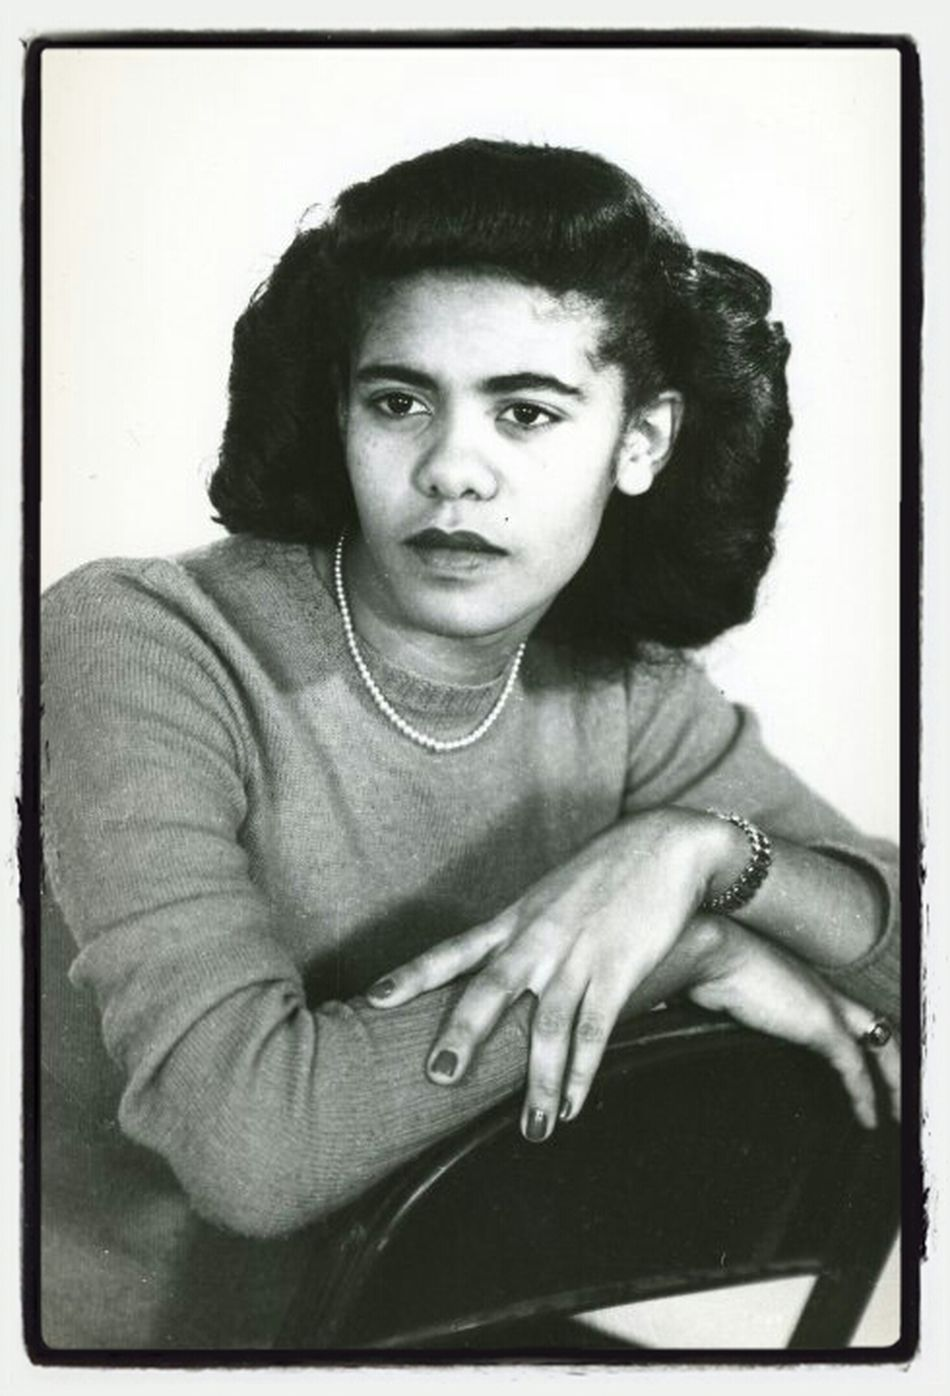 Happy Mothers Day!(my mum age 15)